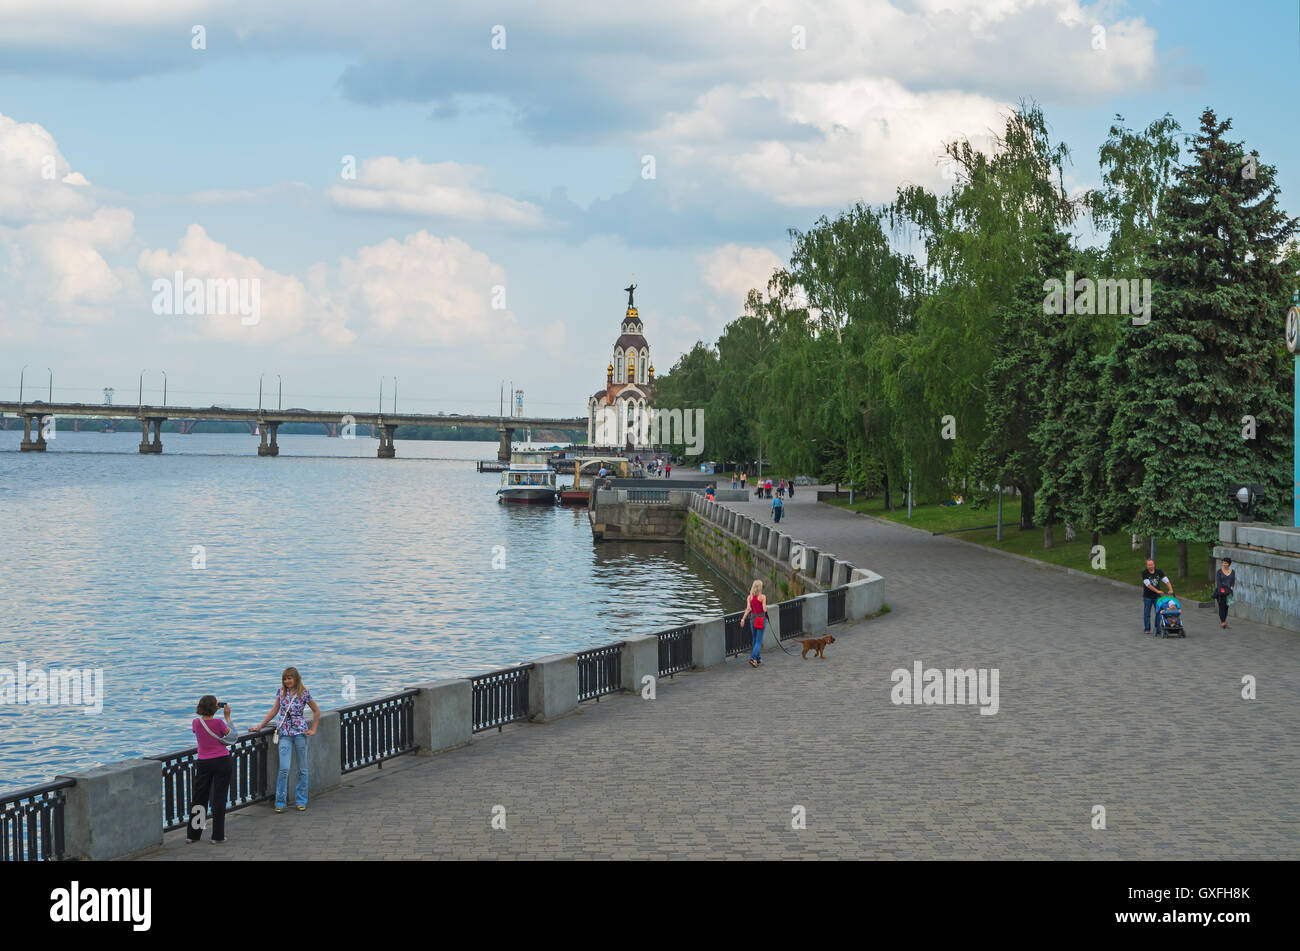 City embankment for walking on a cloudy day in early spring - Stock Image